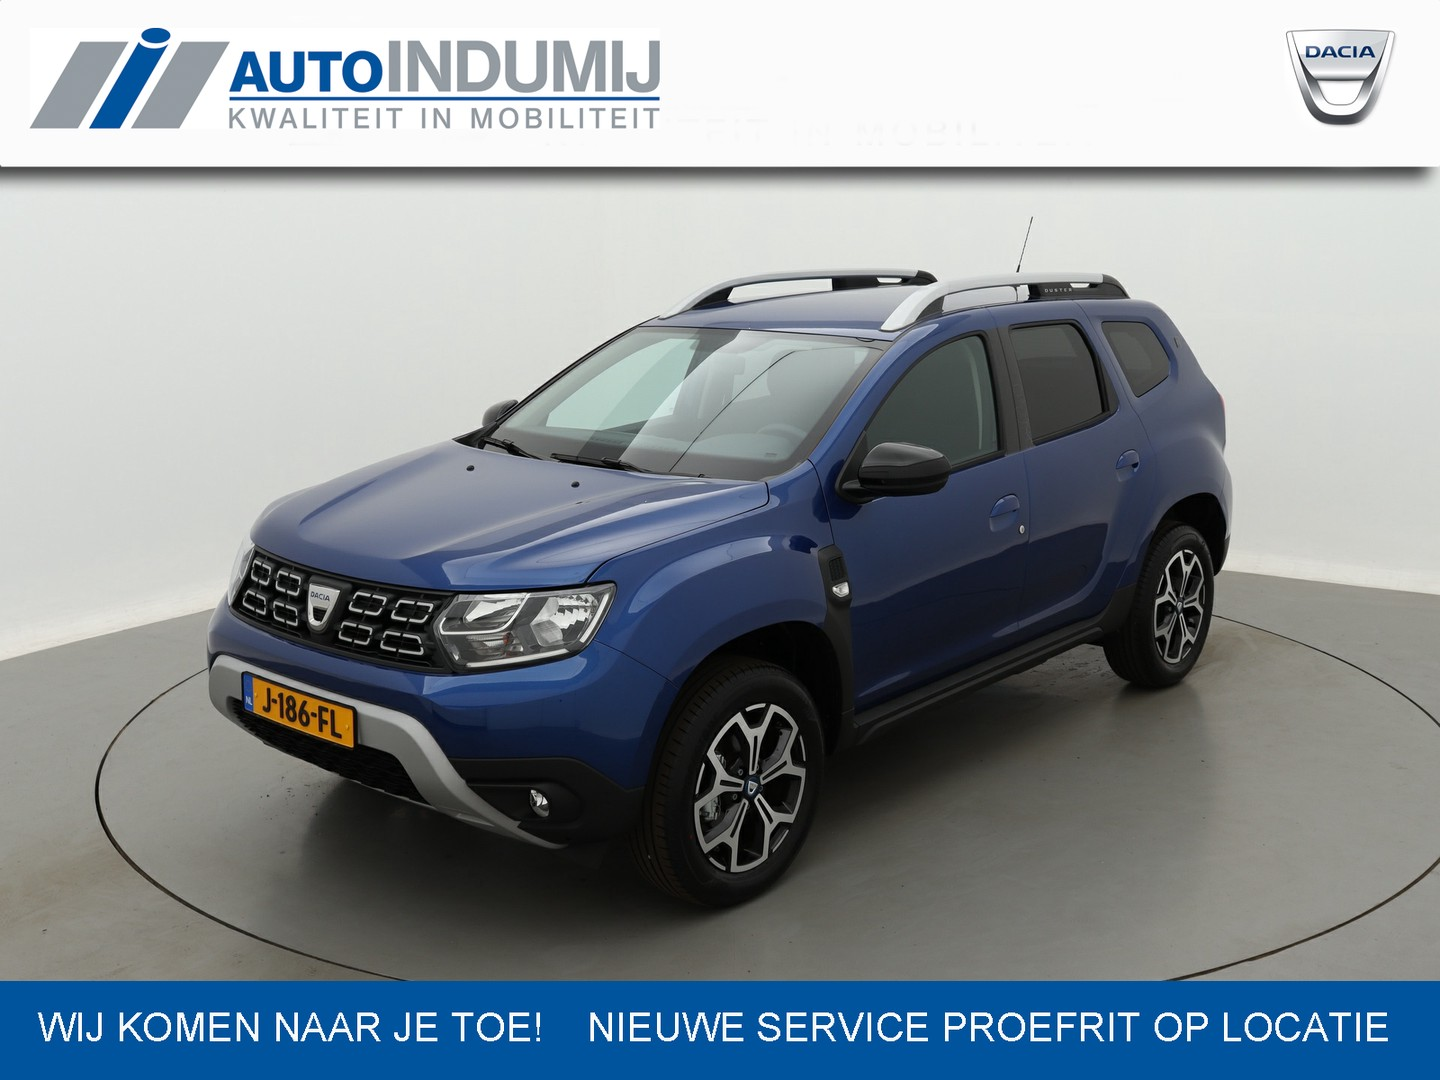 Dacia Duster Tce 130 gpf série limitée 15th anniversary // dodehoek detectie / navi / camera / keyless